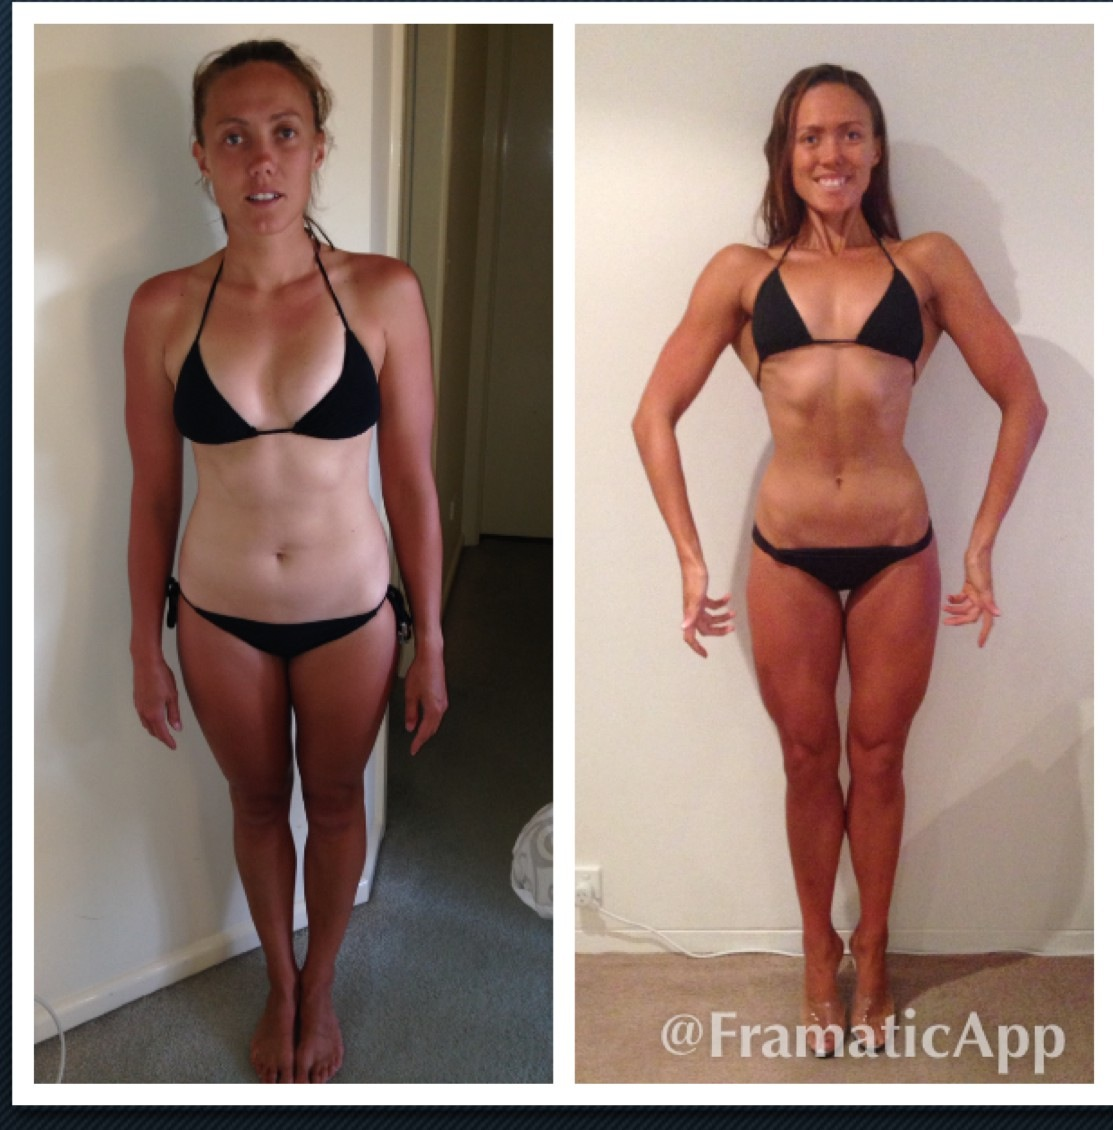 Before & After photo. 24 weeks of hard work and dedication. -9.5kgs & lost 12%BF